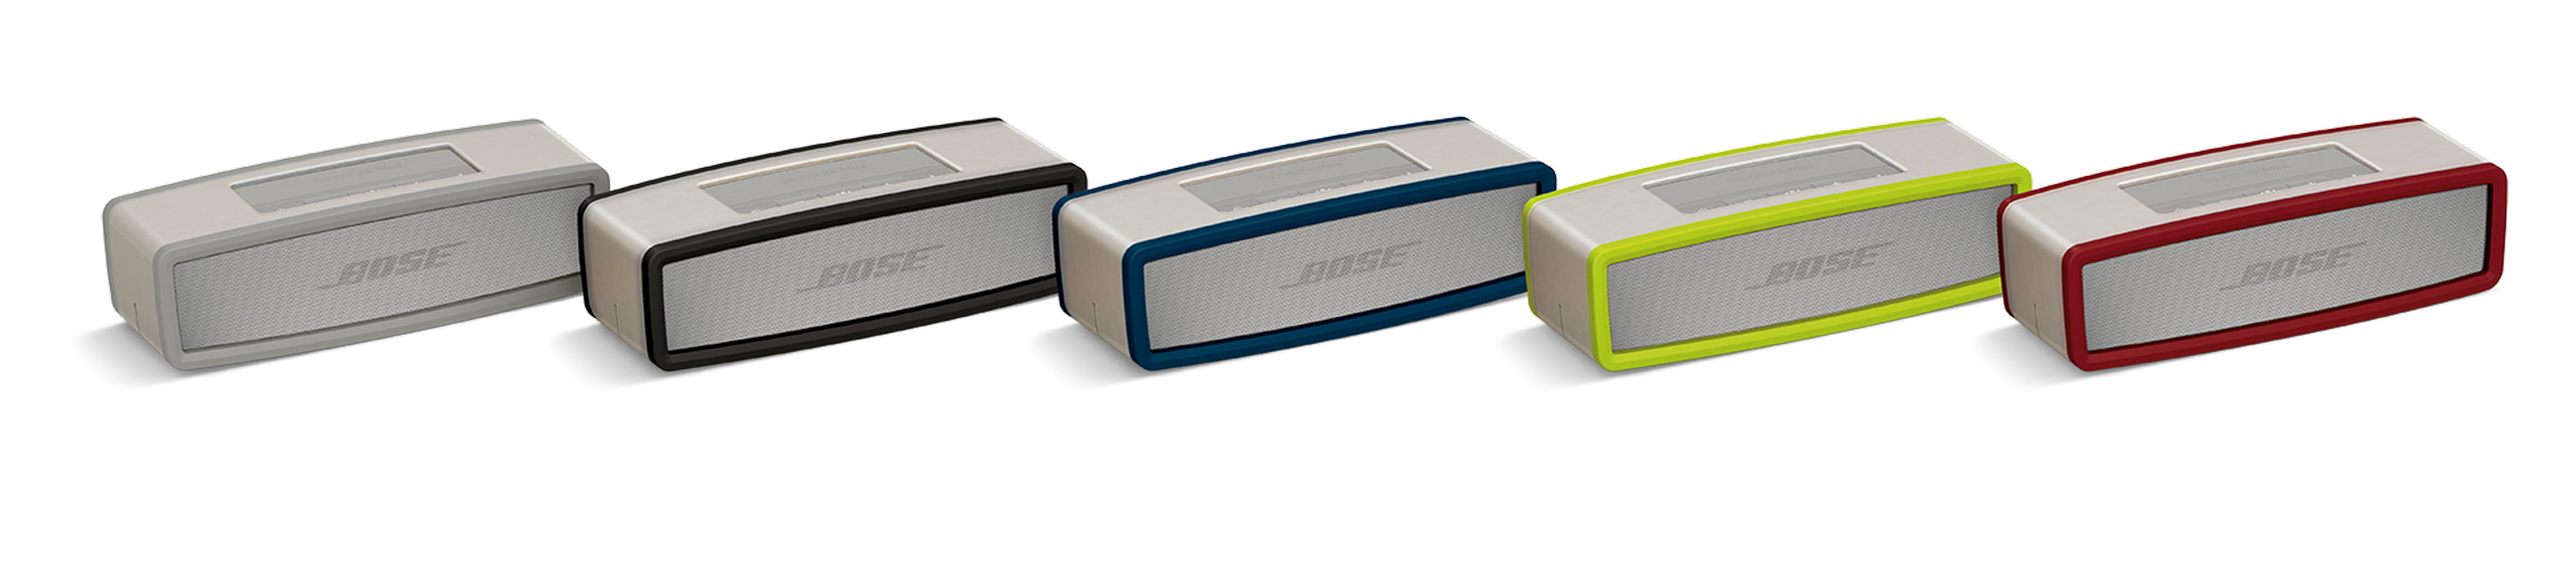 BOSE SoundLink Mini Soft Cover Pearl